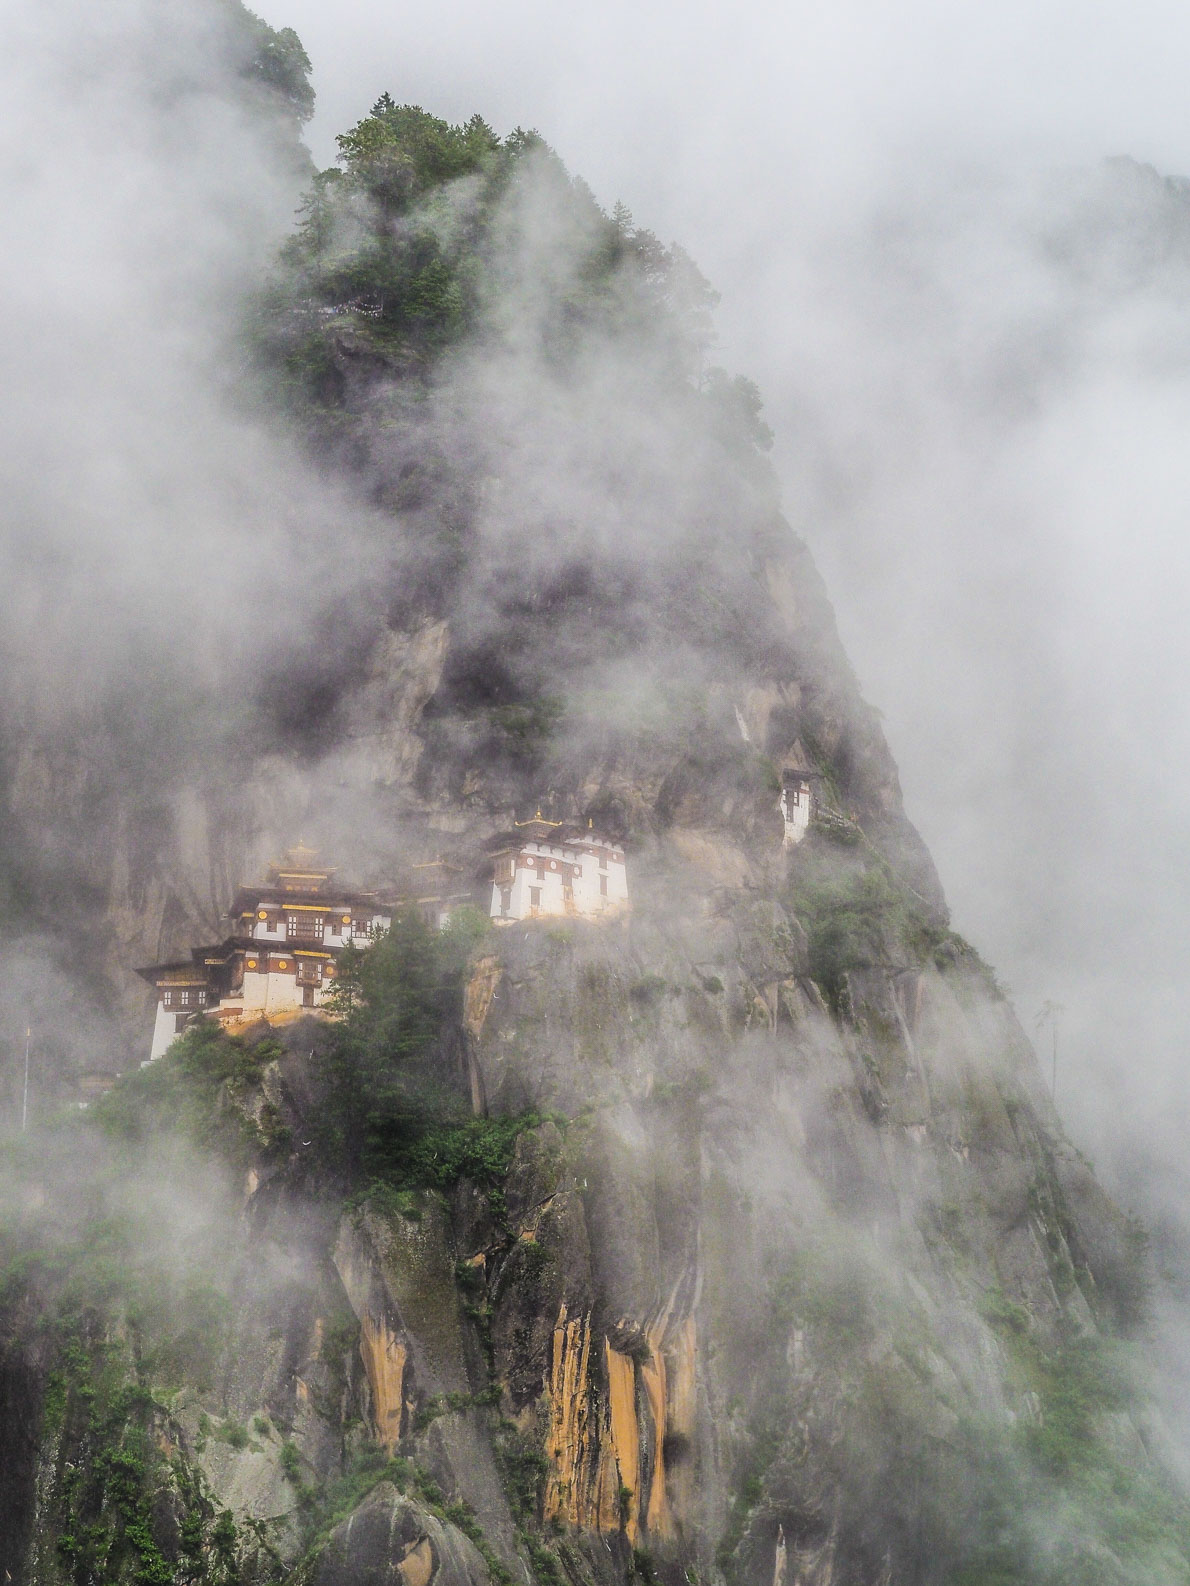 Tiger Nest Monastery in the clouds in Bhutan